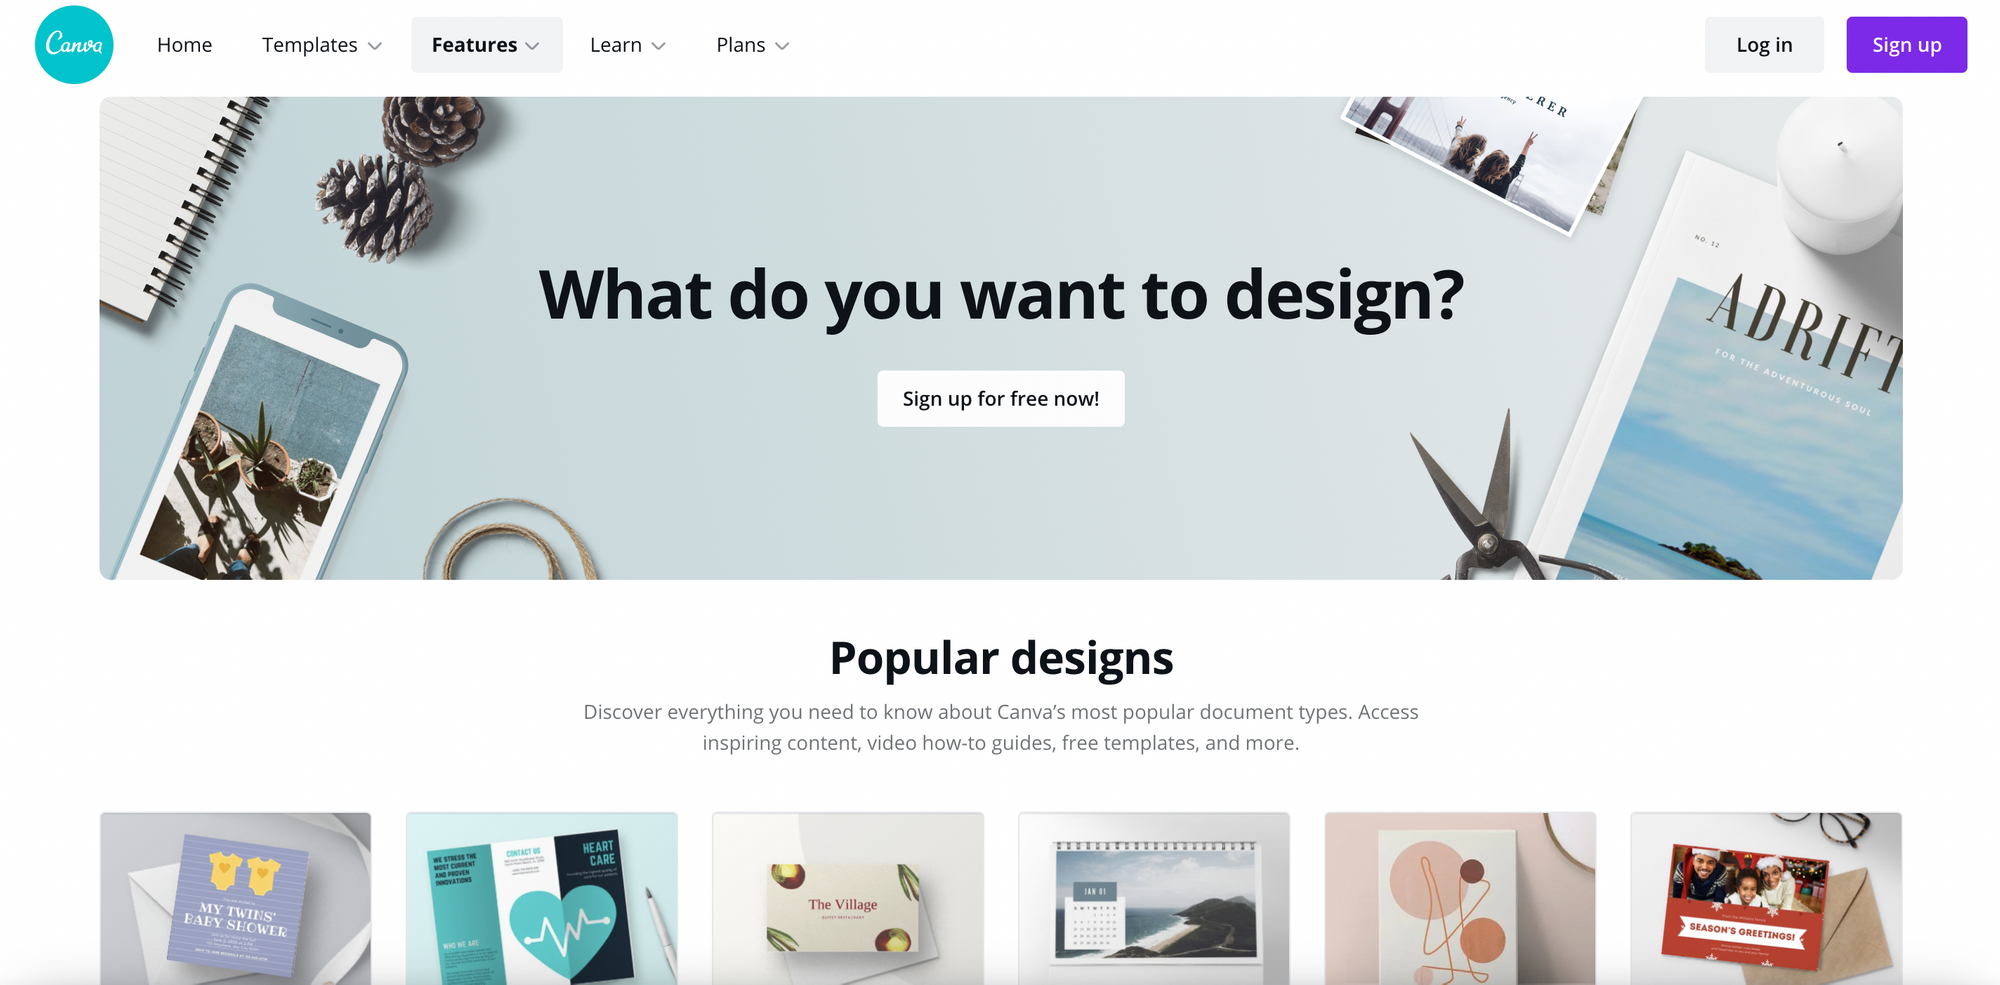 Here are some examples of Canva's popular designs.